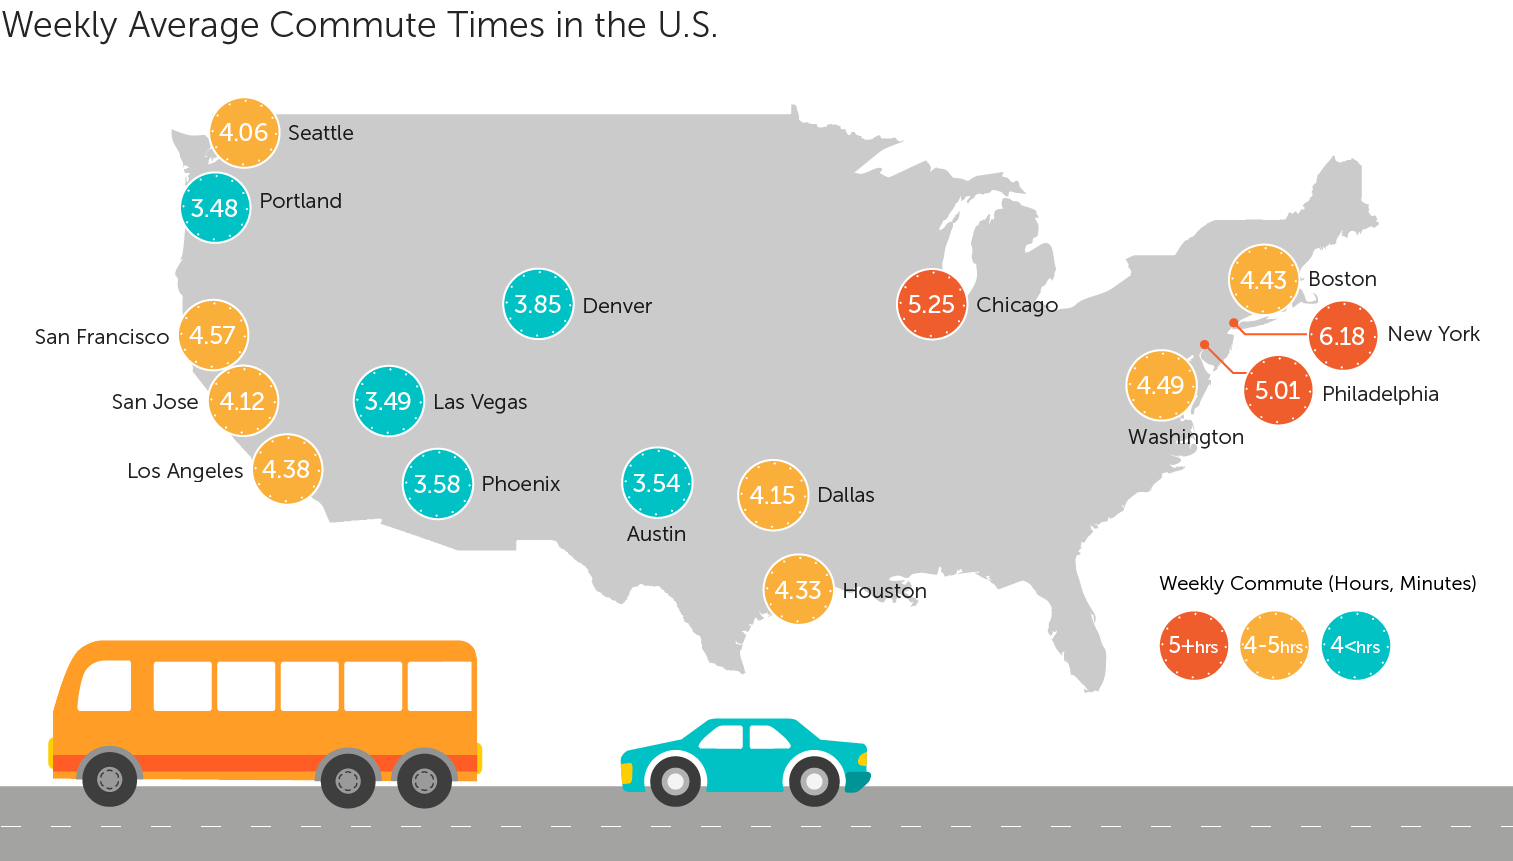 Weekly Average Commute Times in the US